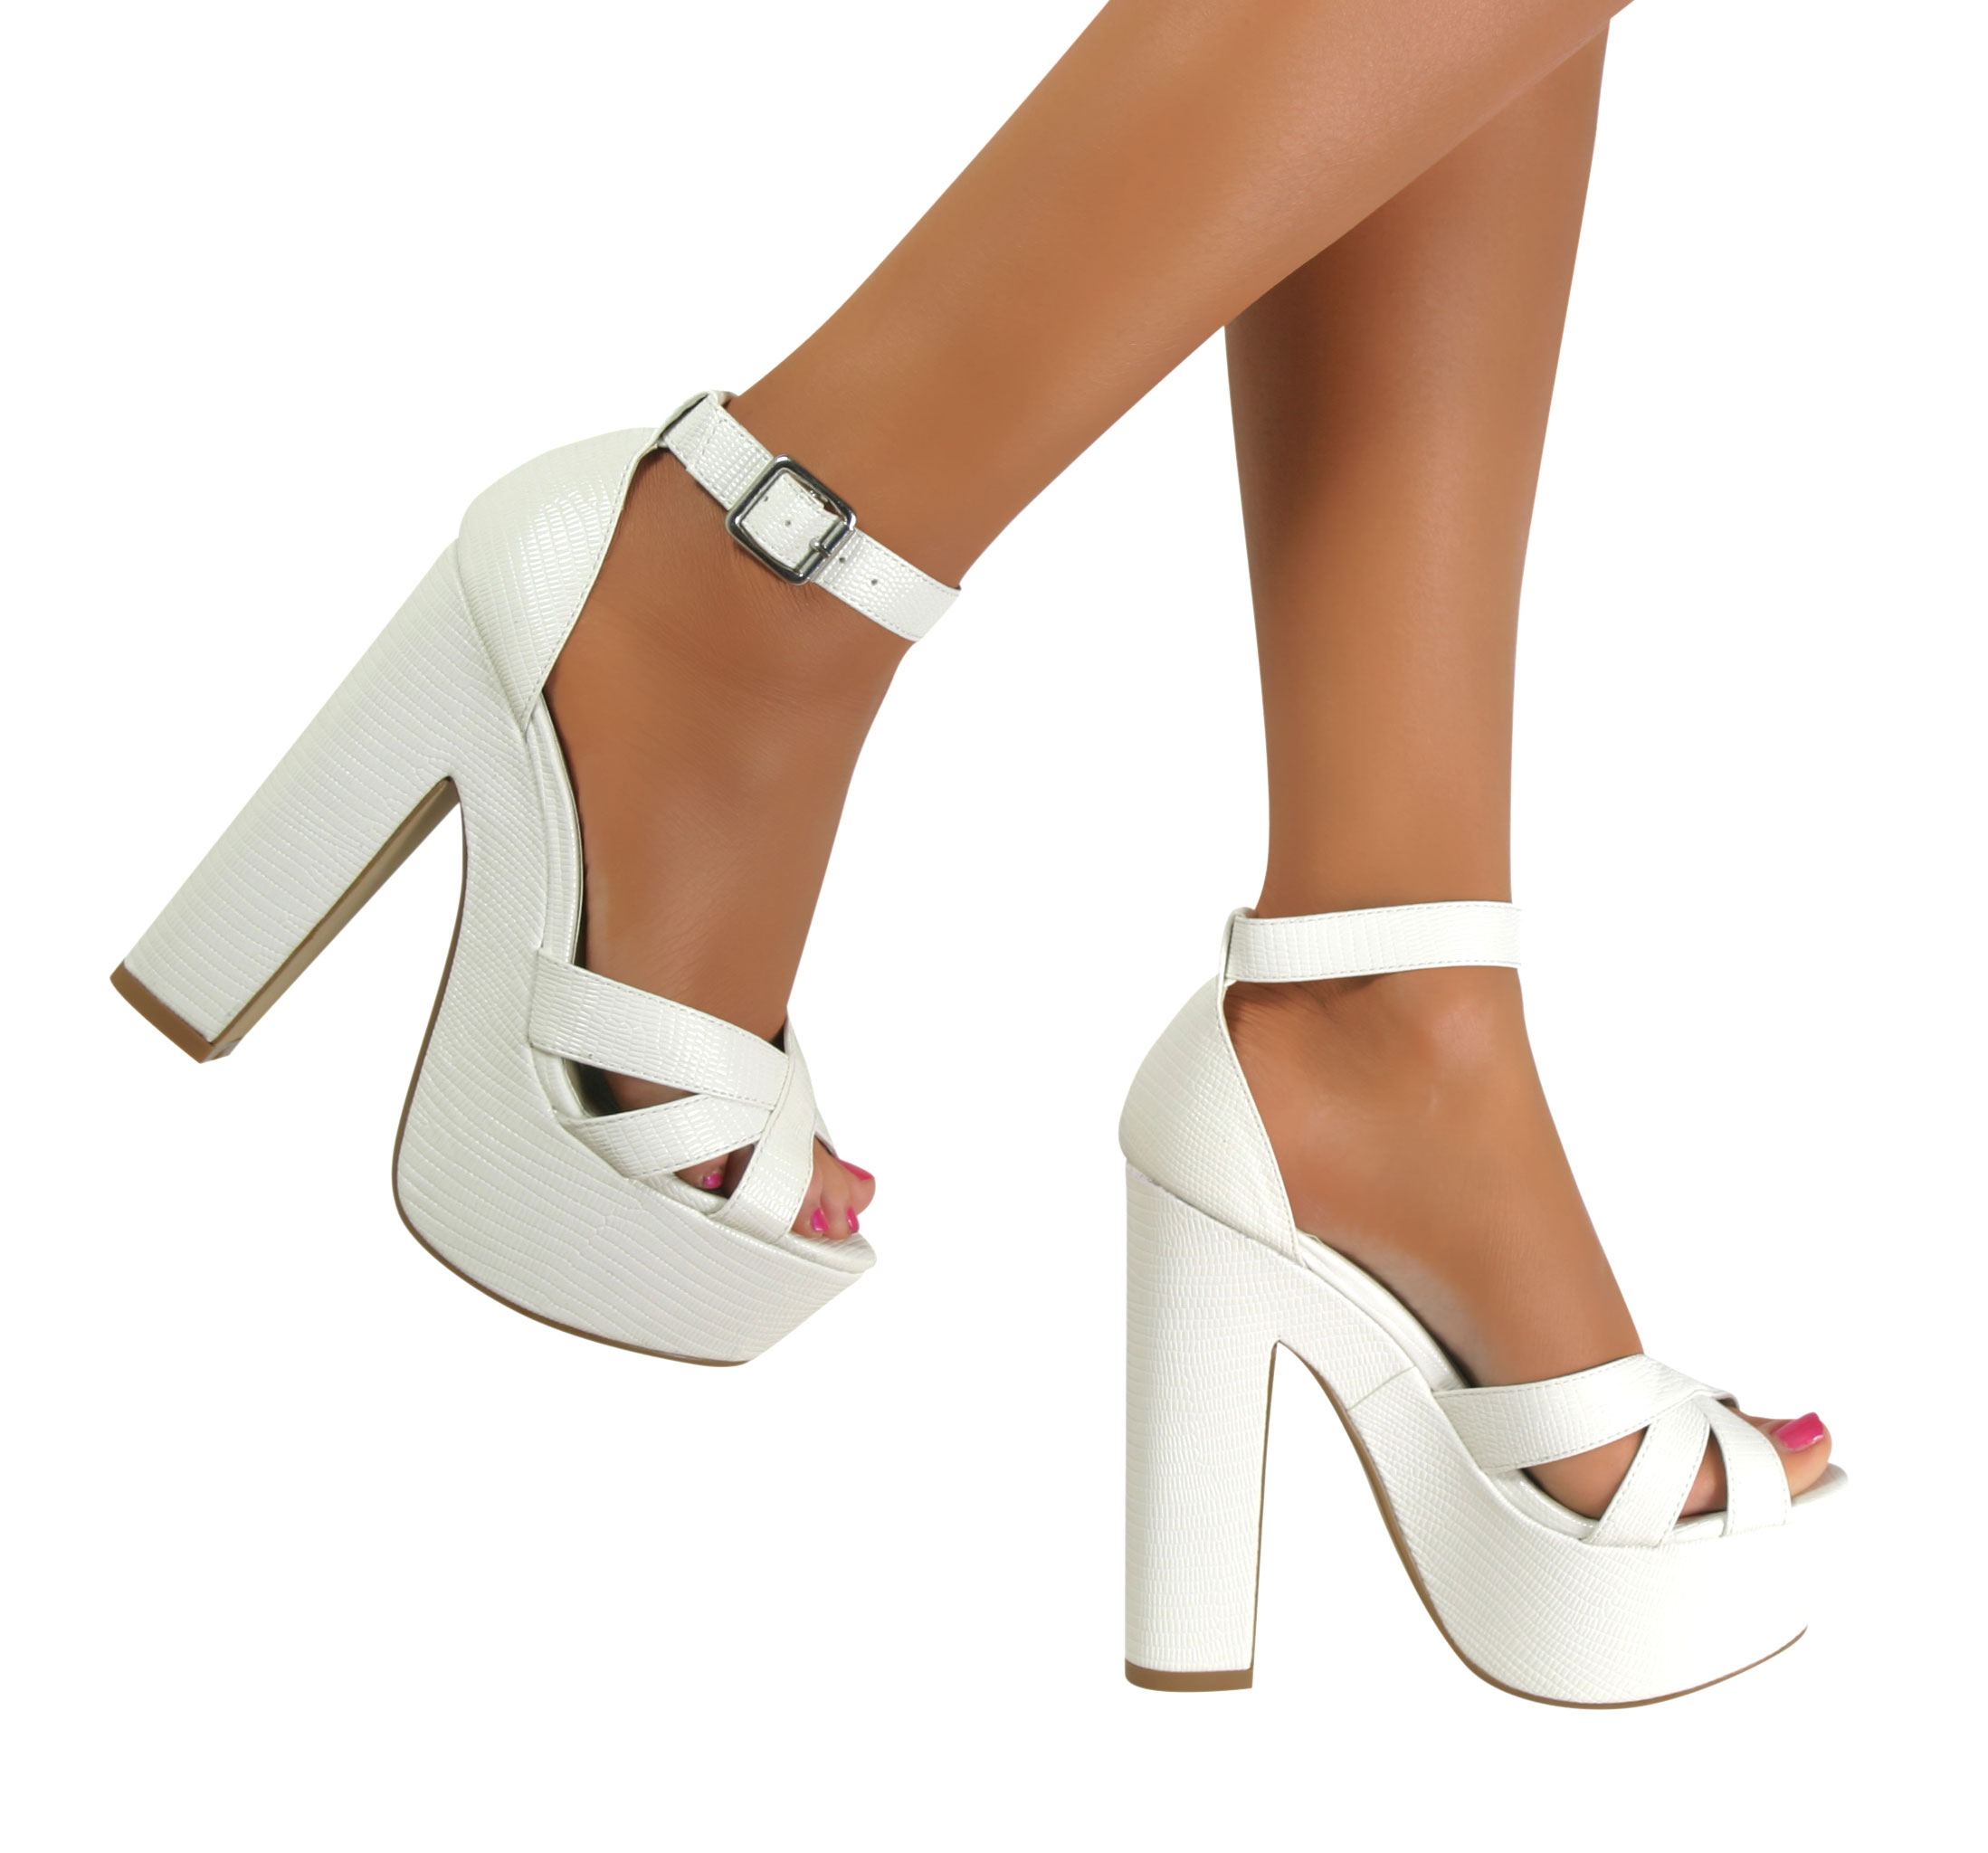 White Block Heel Shoes - Is Heel